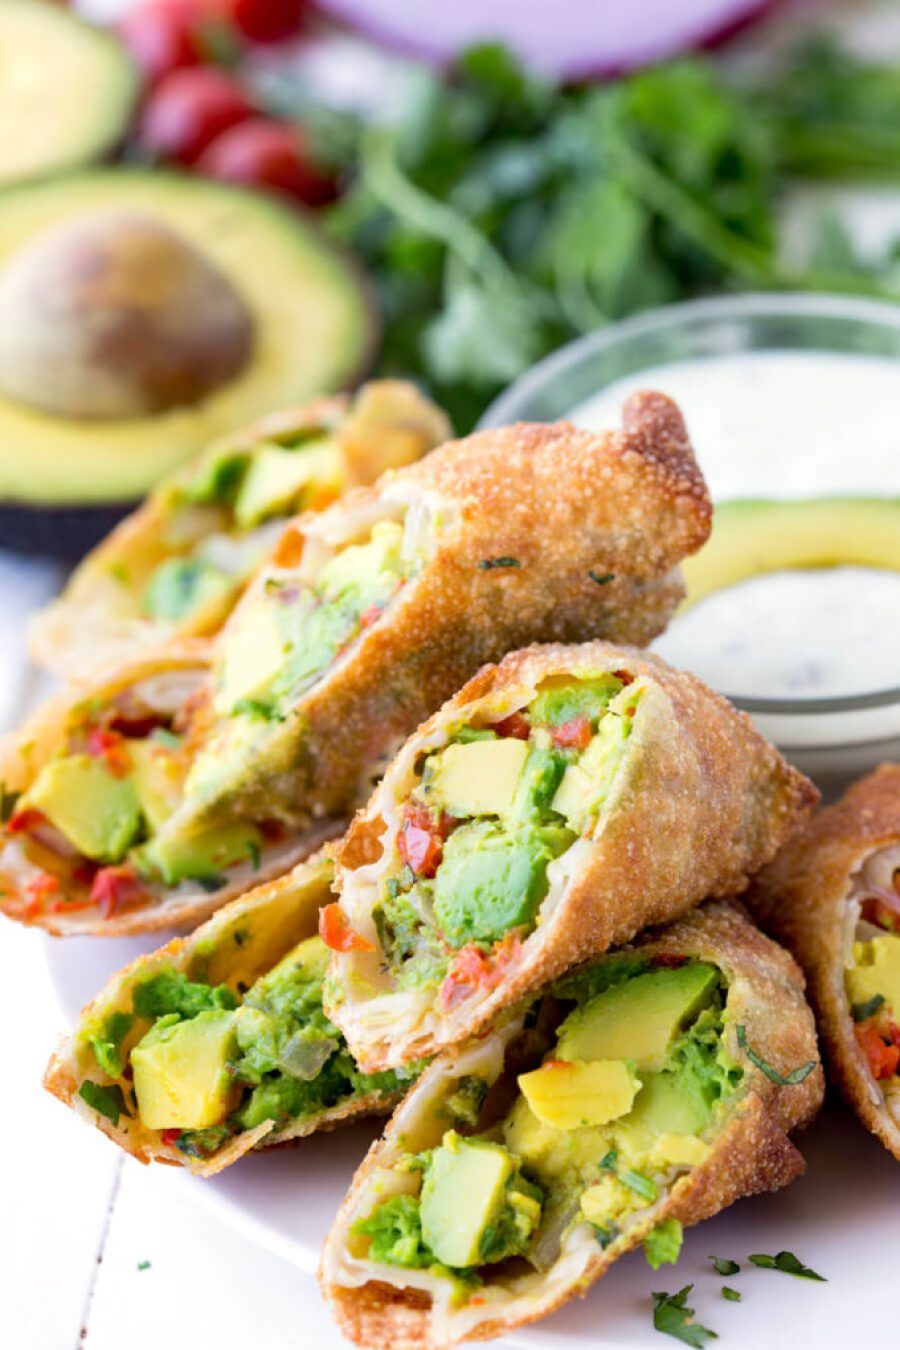 Avocado Egg Roll Dipping Sauce: Crunchy egg roll wrapper filled with chunks of California Avocados, cilantro, tomatoes, red onion, and roasted red peppers; dipped in a creamy avocado ranch dipping sauce!